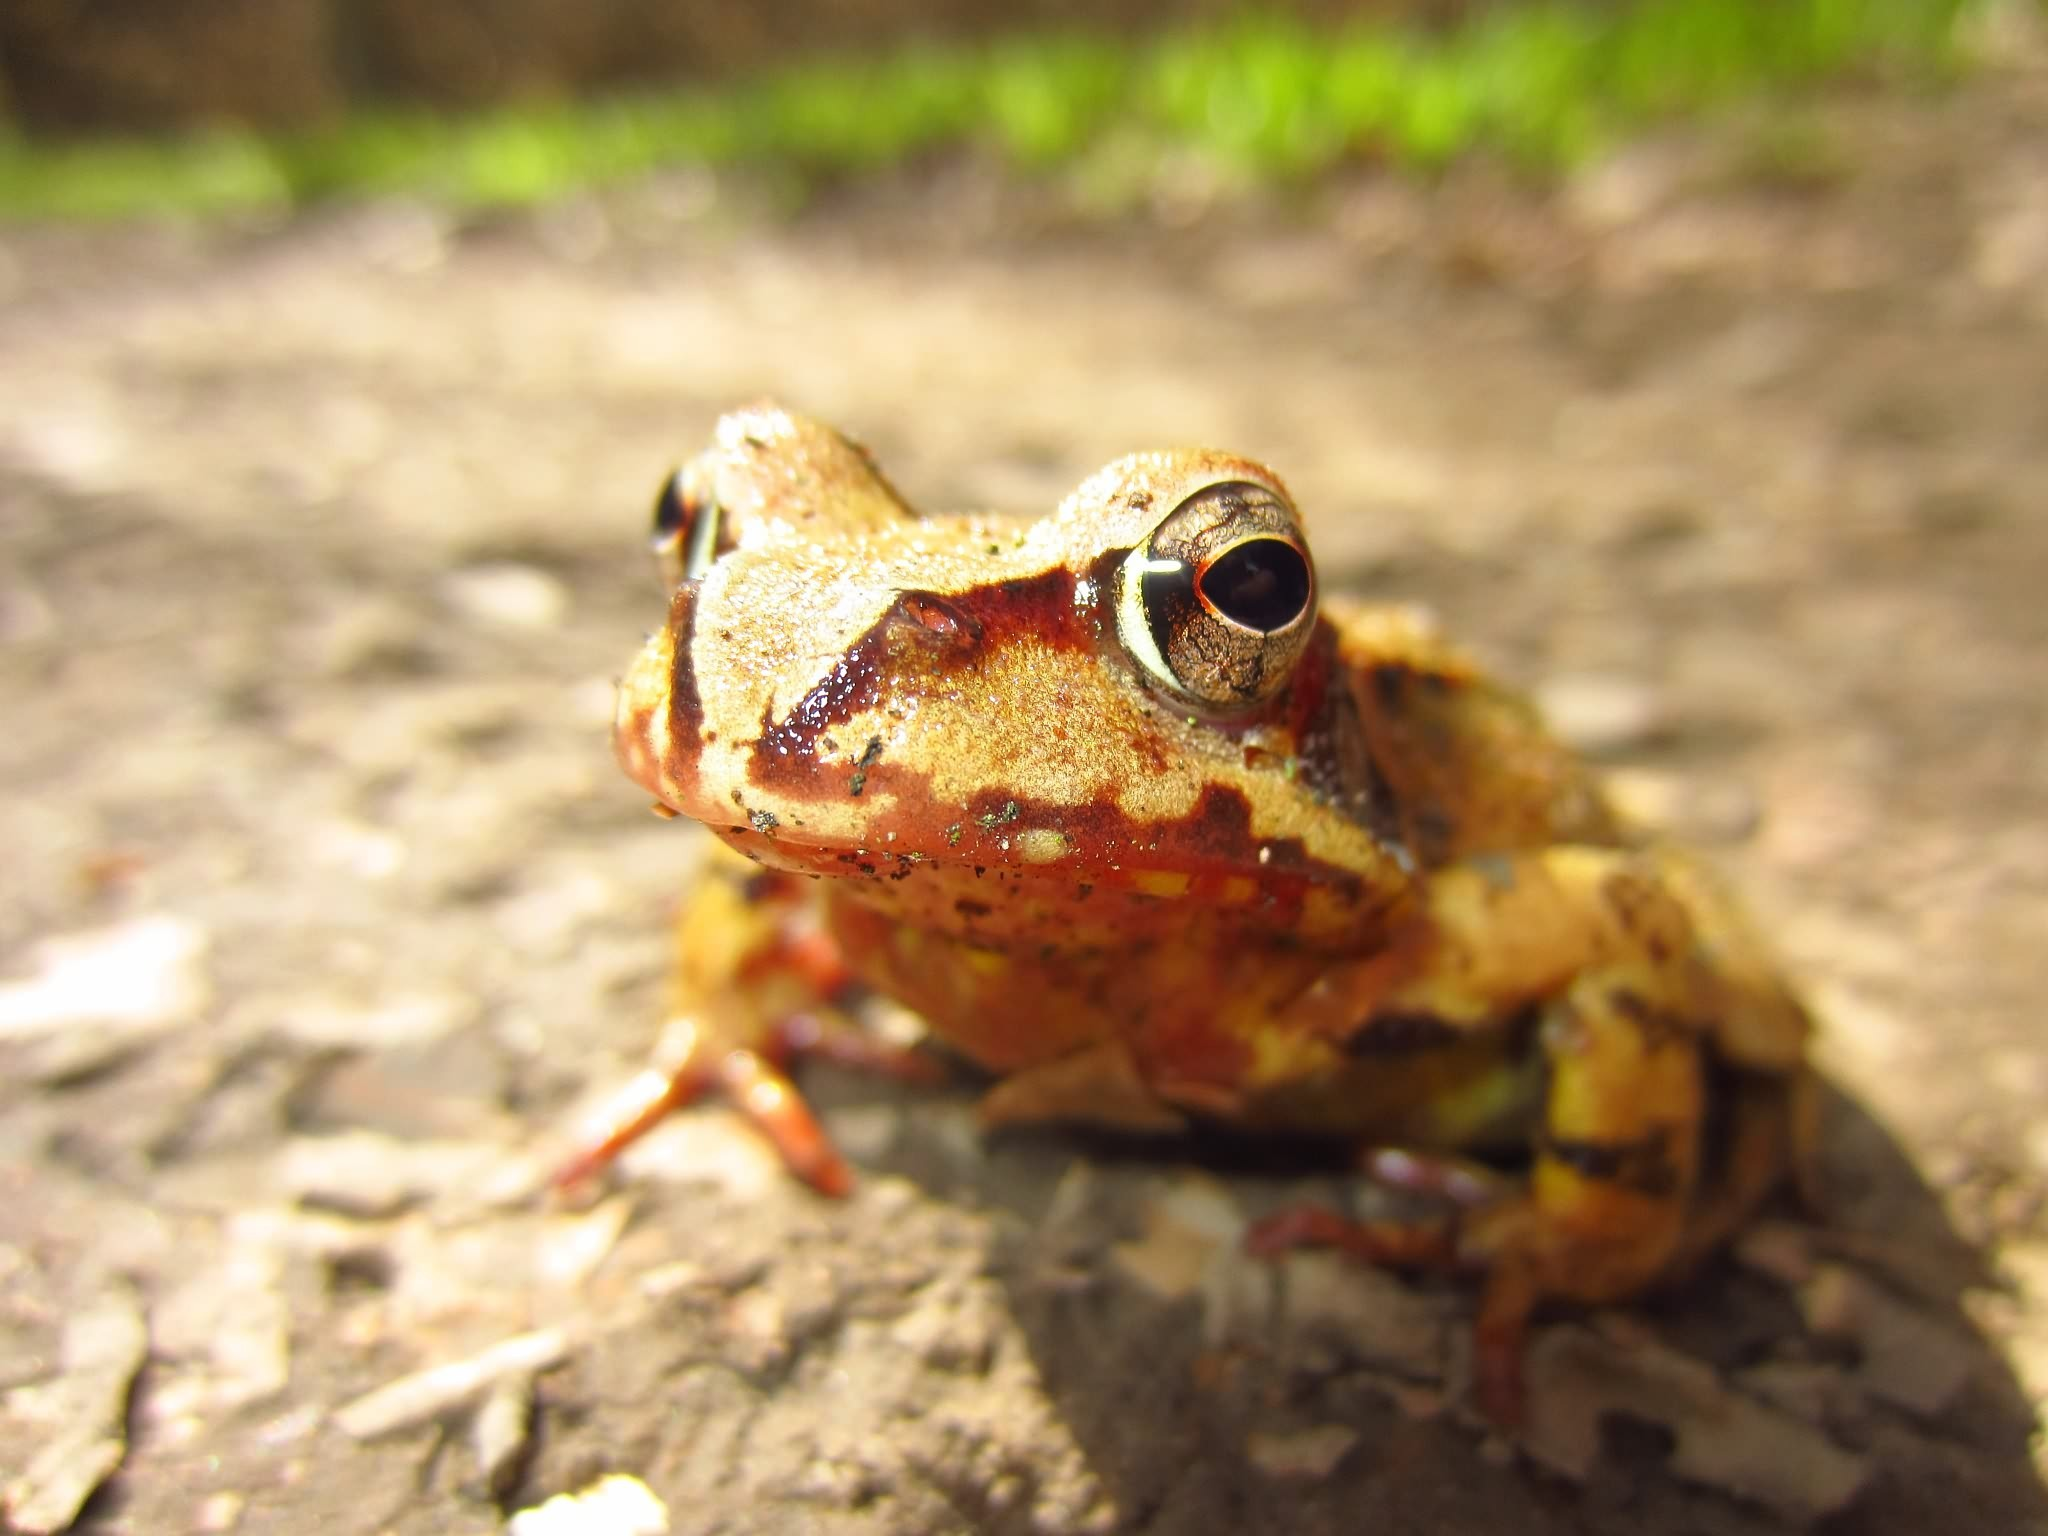 Road salt changes sex ratios in frog populations